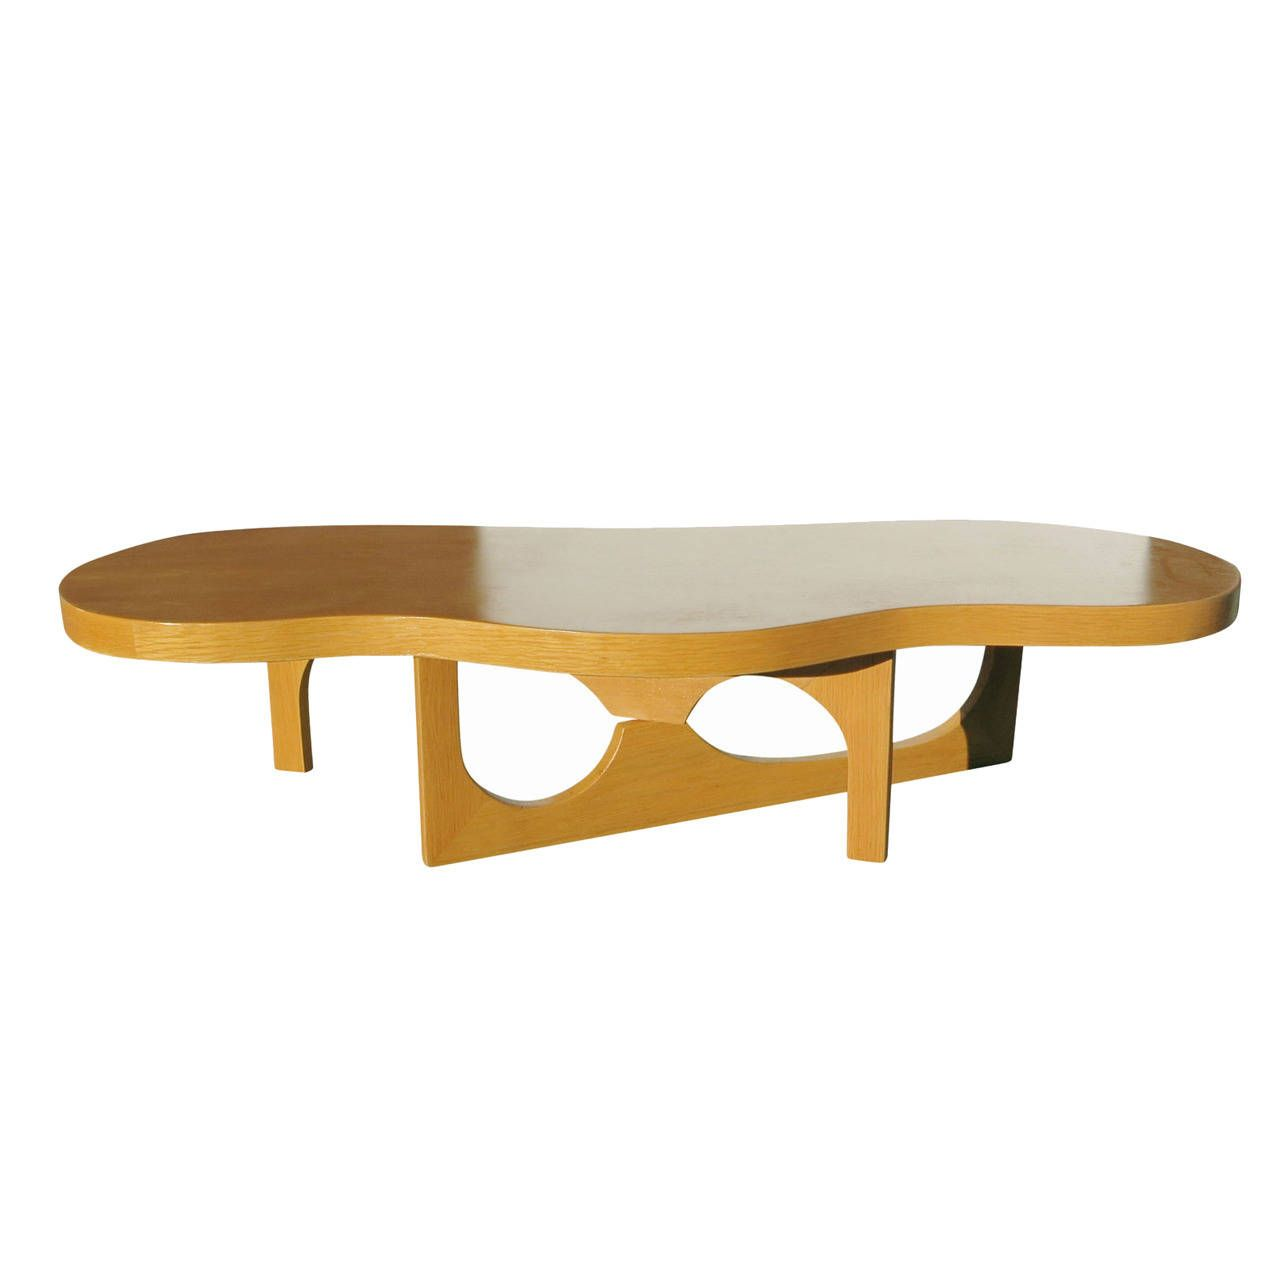 Isamu noguchi inspired free form coffee table isamu noguchi isamu noguchi inspired free form coffee table geotapseo Choice Image